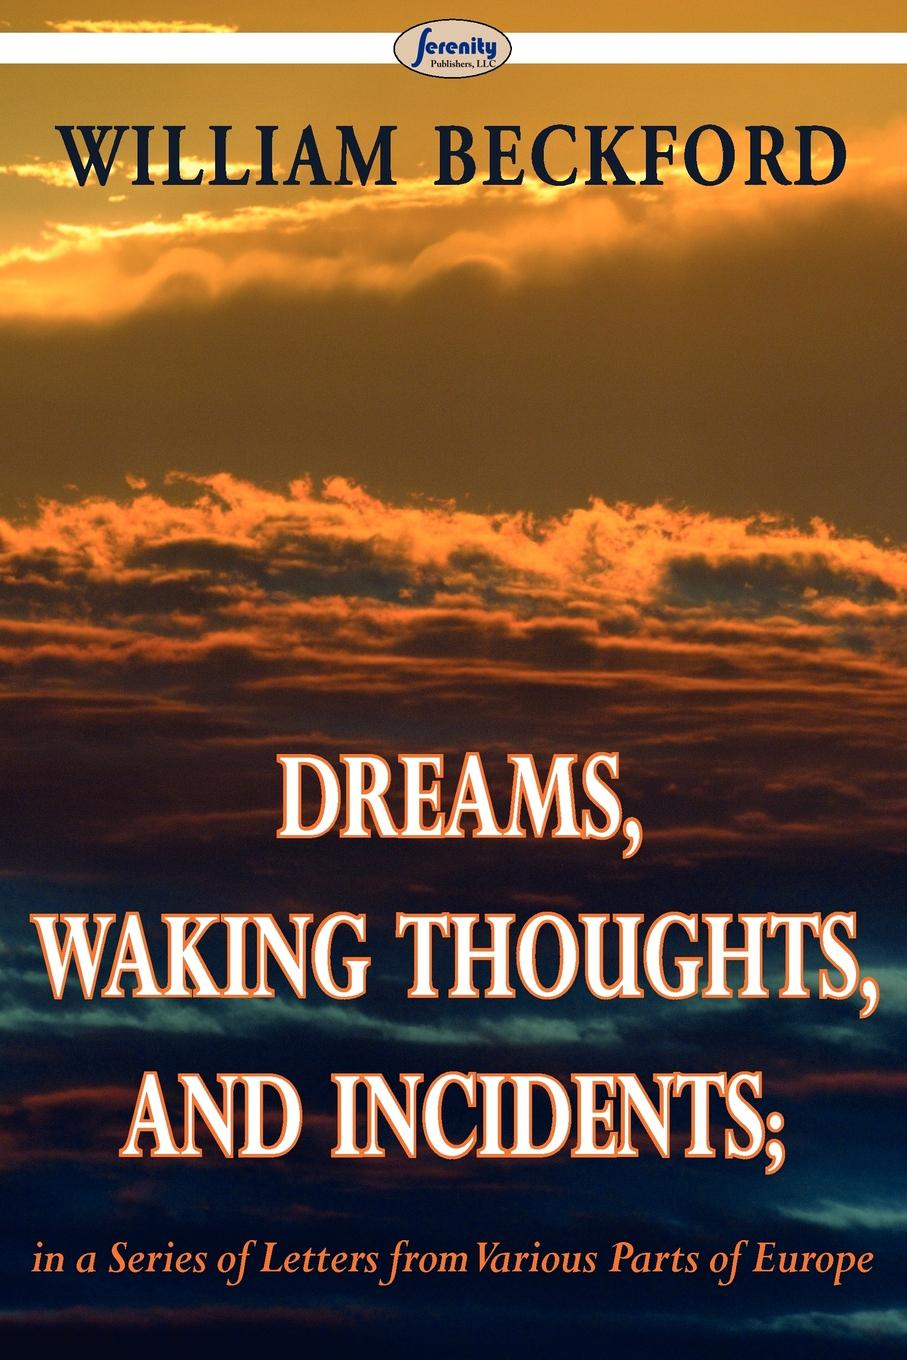 William Beckford Dreams, Waking Thoughts, and Incidents